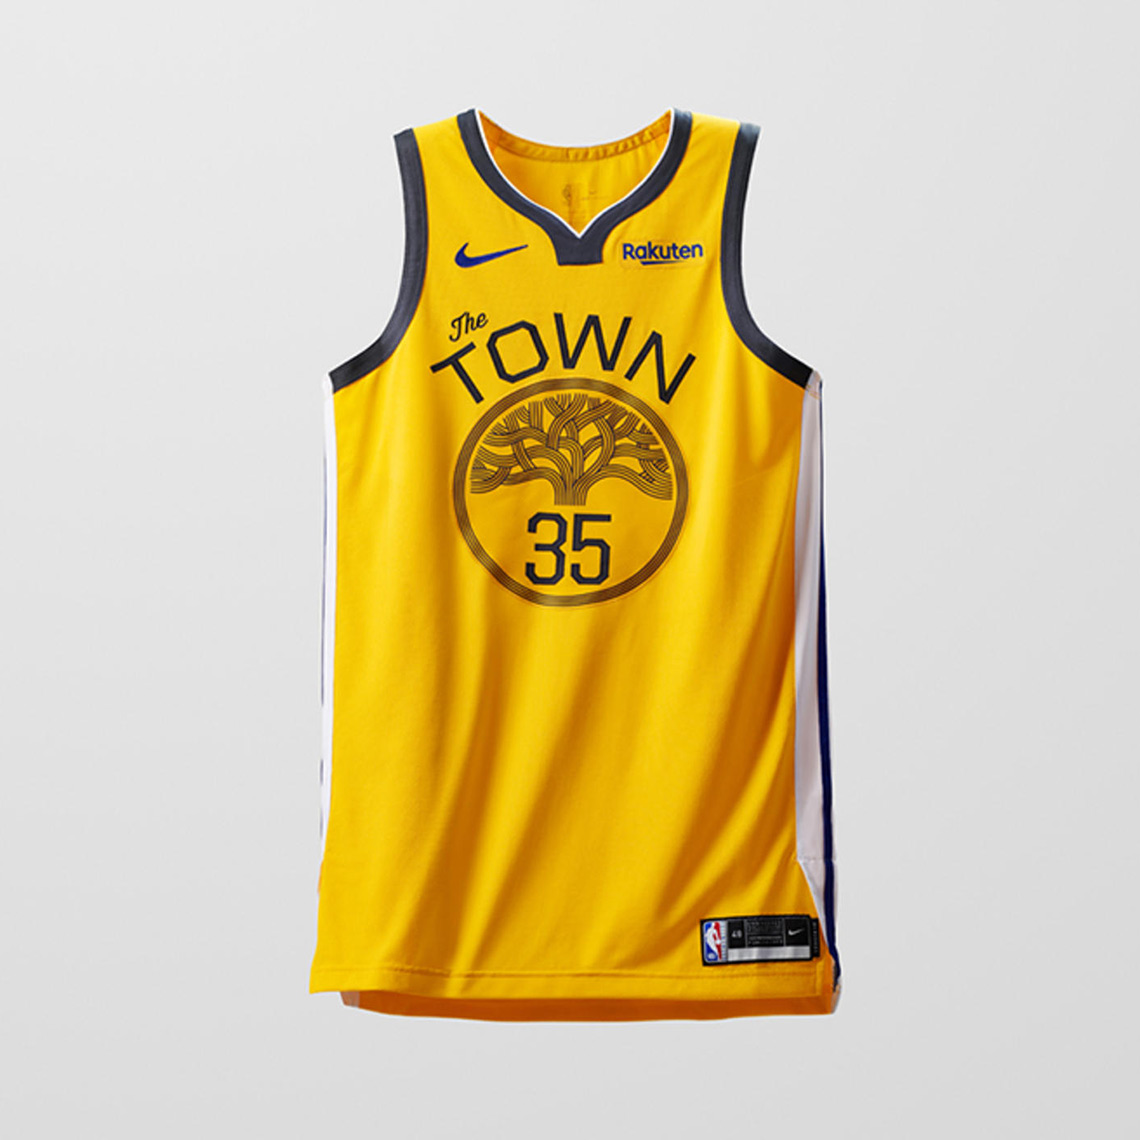 Nike s New Earned Edition NBA Jerseys Are Only For Playoff Teams 8be06a19c